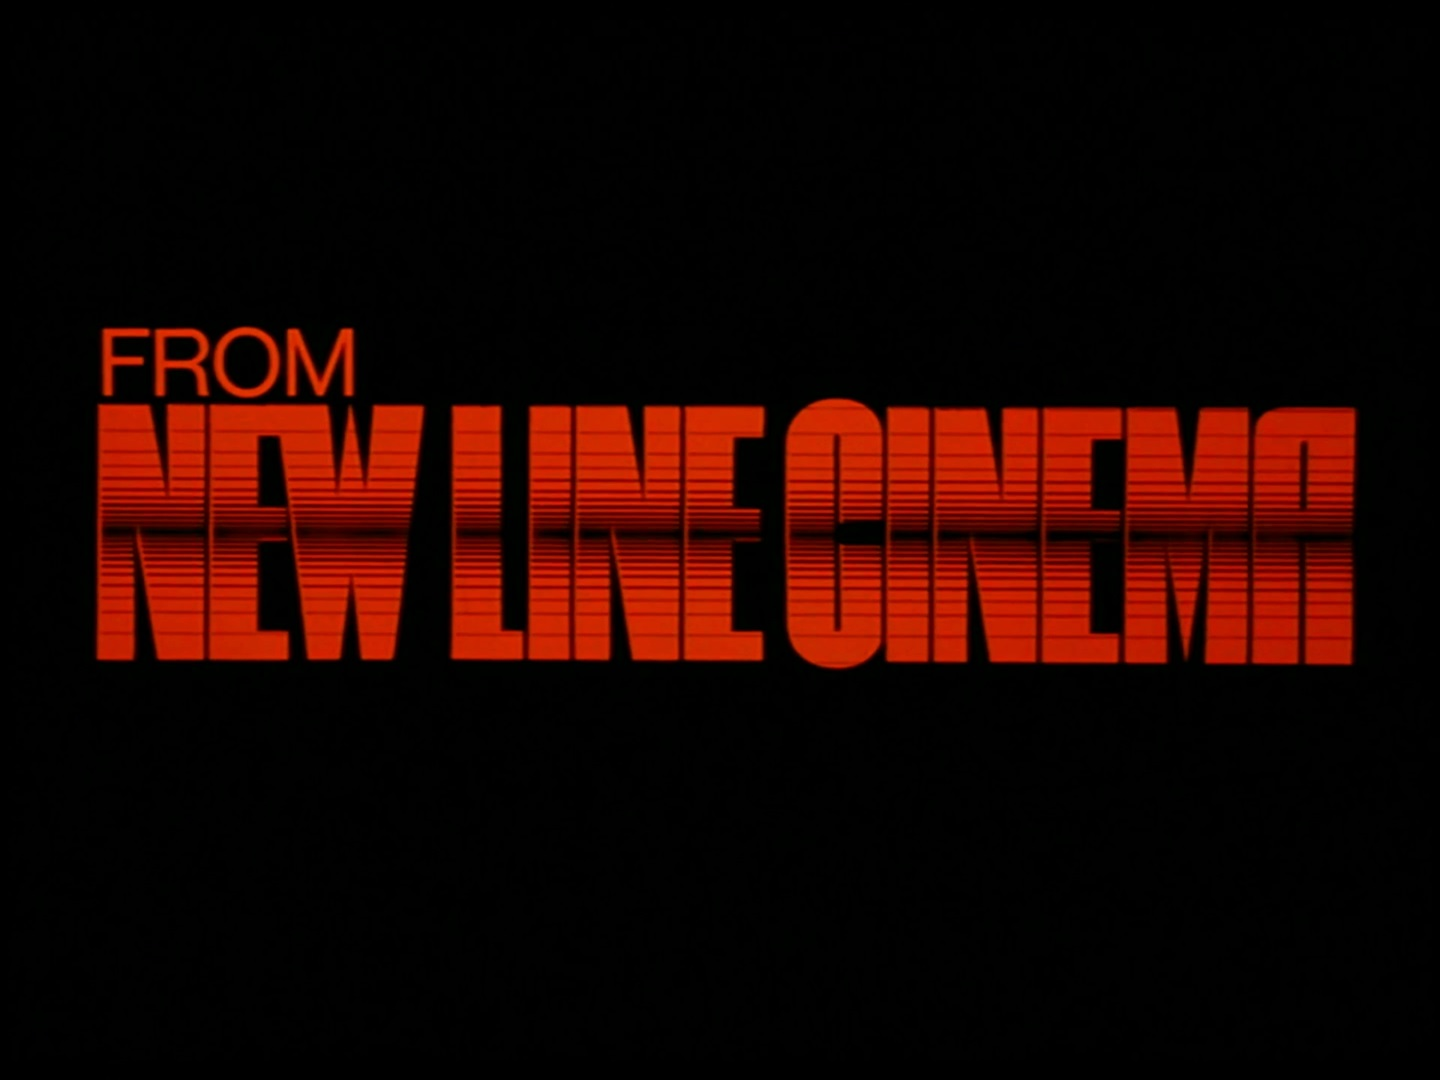 New Line Cinema/Other